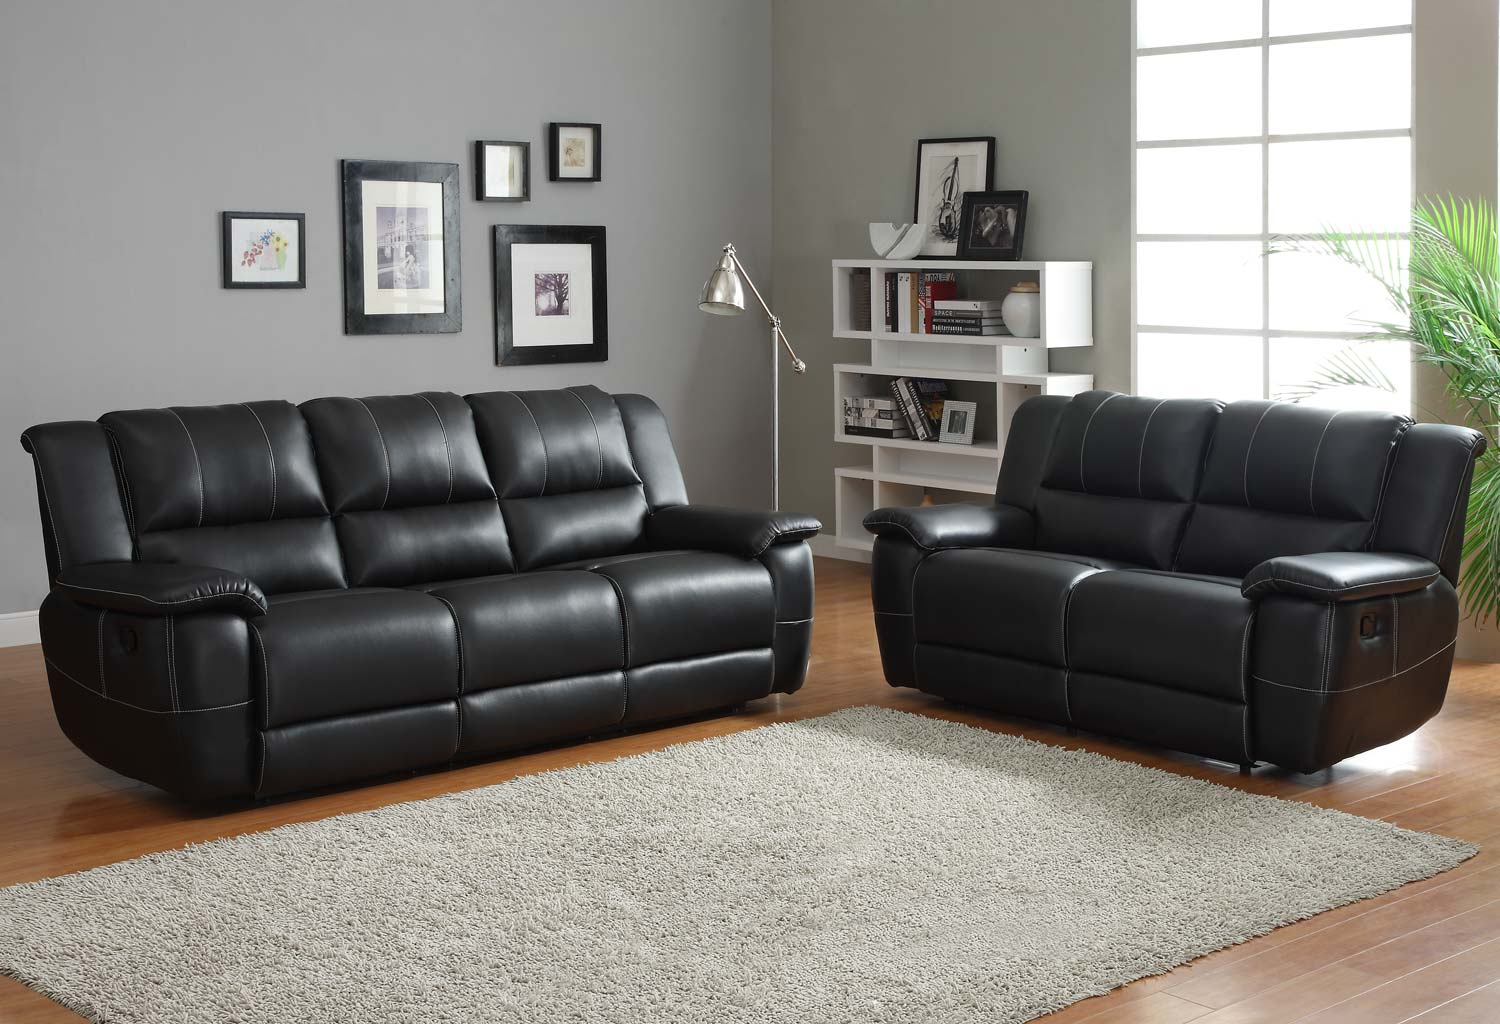 Epic Genuine Leather Black Sofa 92 For Sofas and Couches Set with Genuine Leather Black Sofa